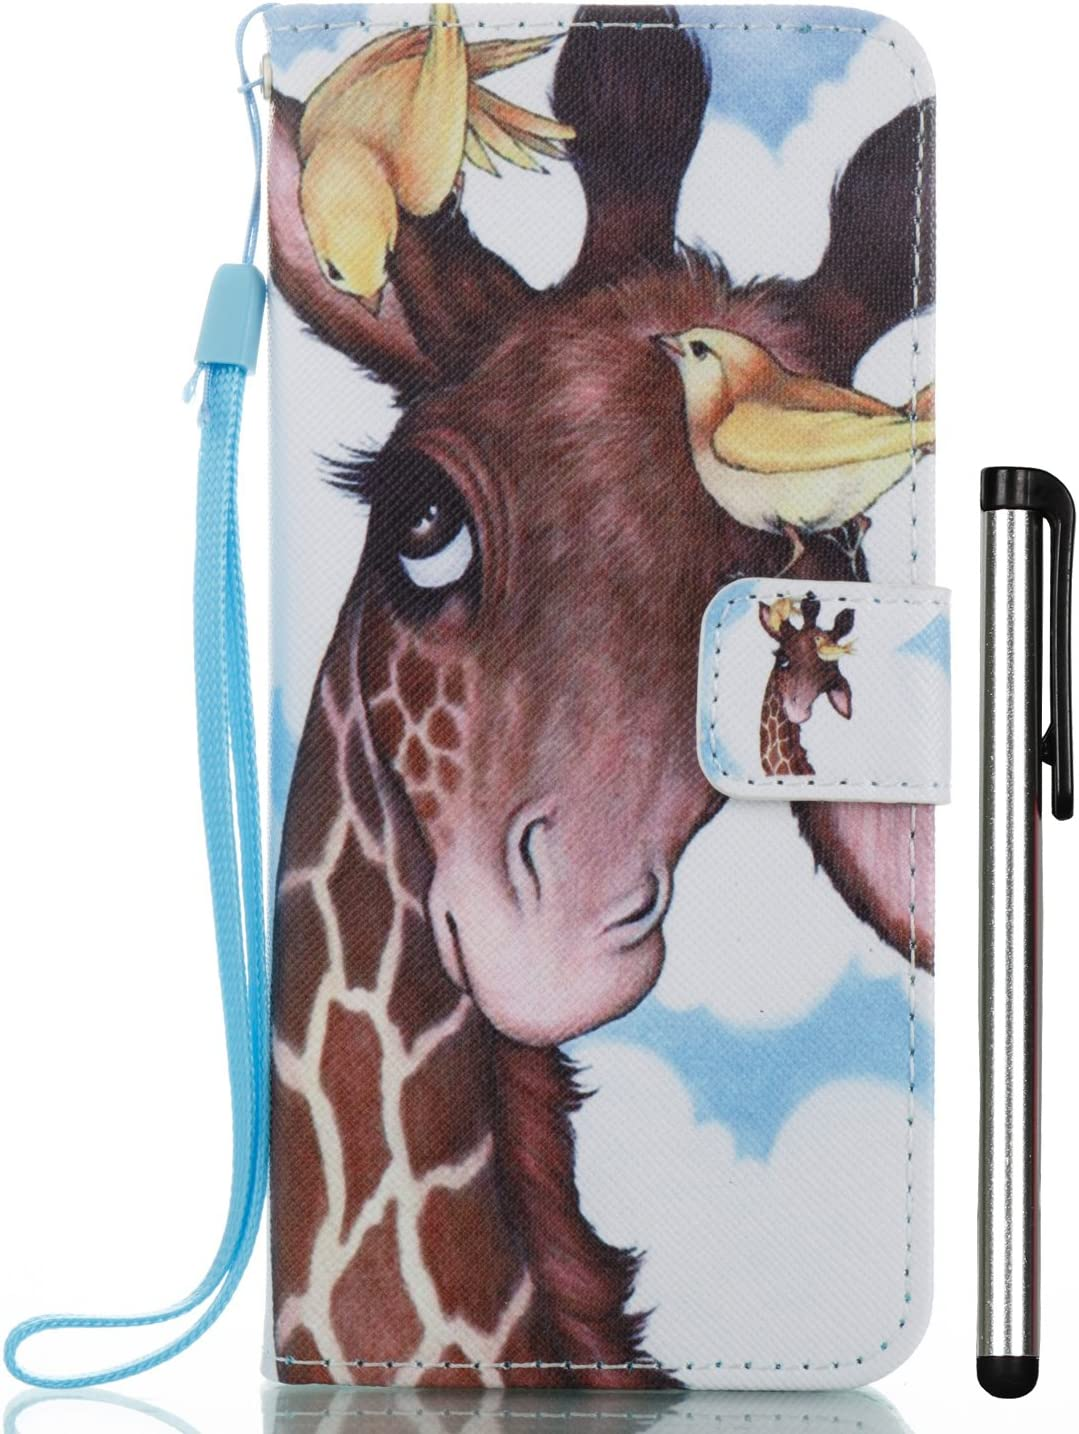 Galaxy S8 Plus Case, S8 Plus Case, 2 Card Slot Wallet Folio PU Leather Case Cover with Magnetic Book Case for Samsung Galaxy S8+ 2017 6.2 inch SM-G9 + Stylus Bird Deer